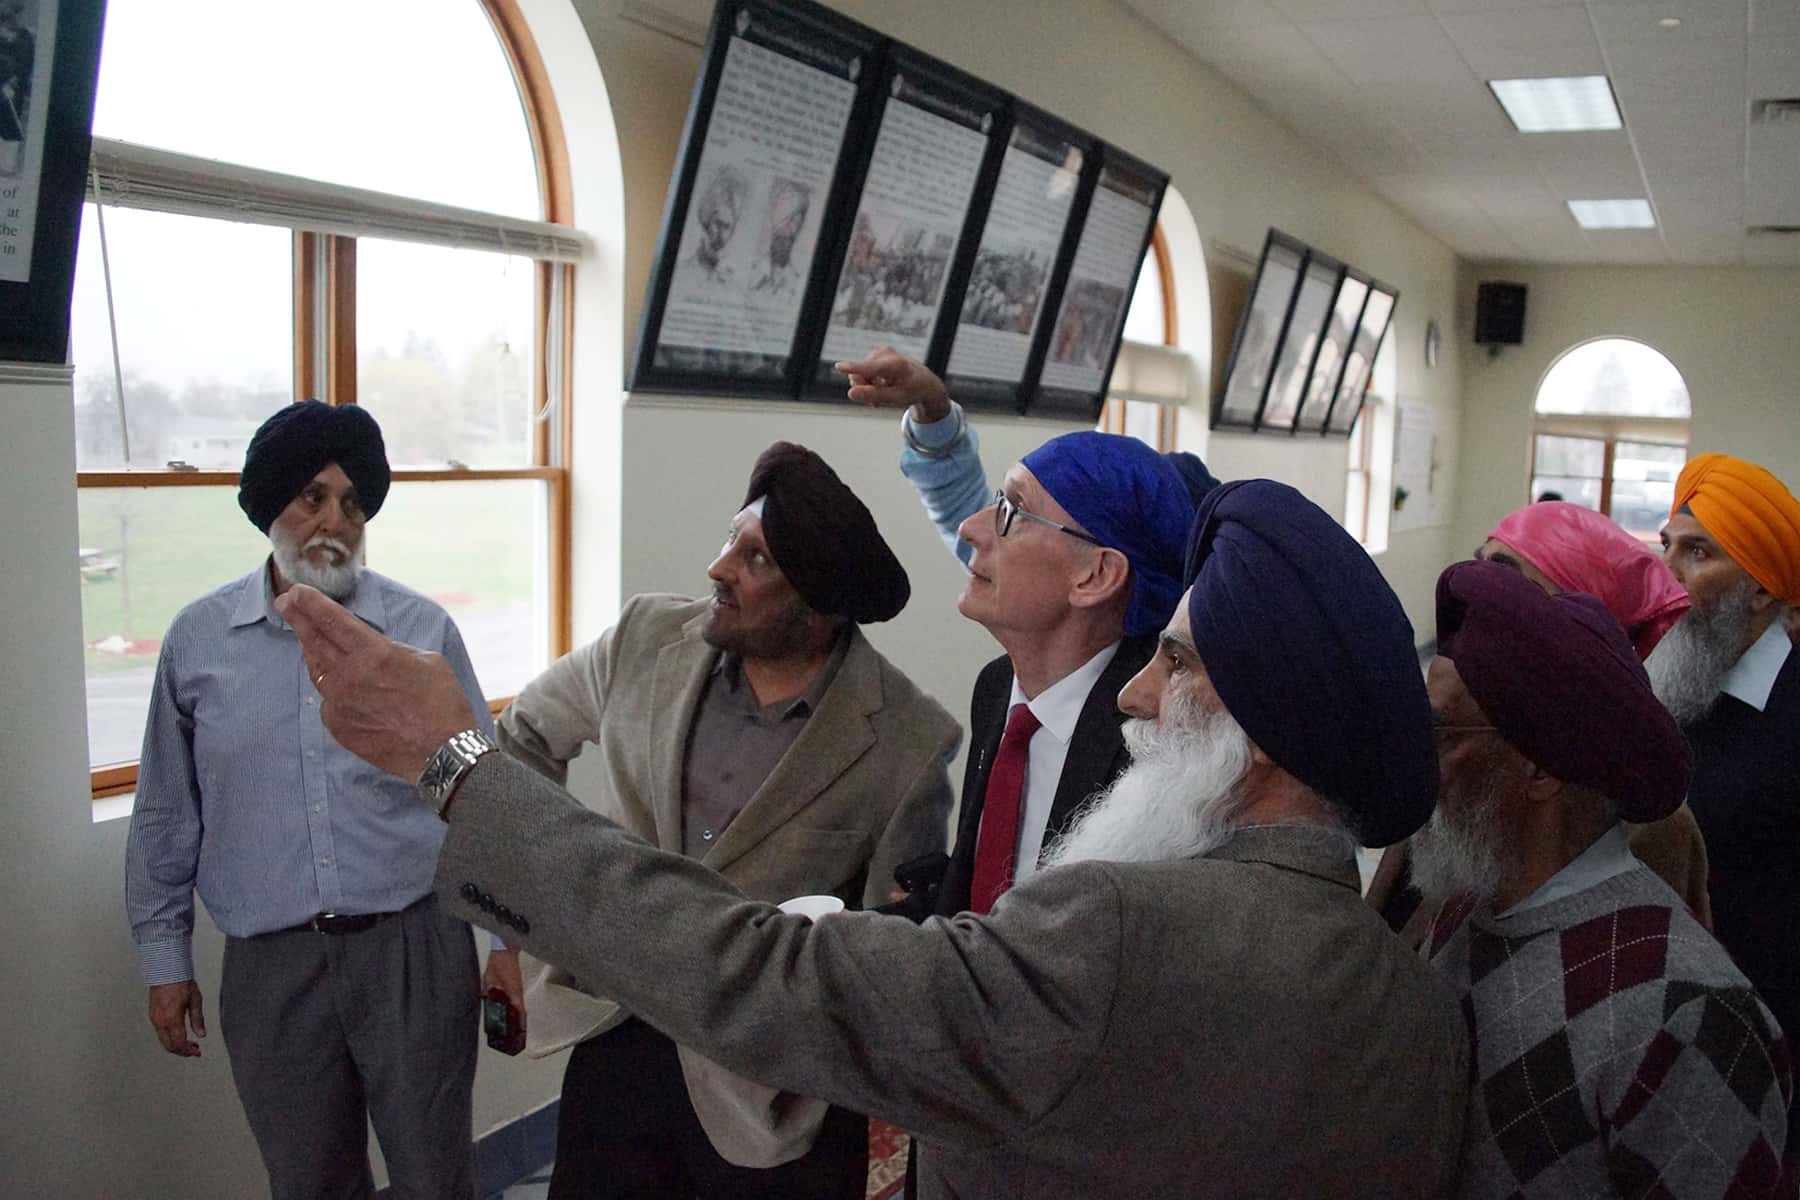 02_043019_sikhtempleevers_0922